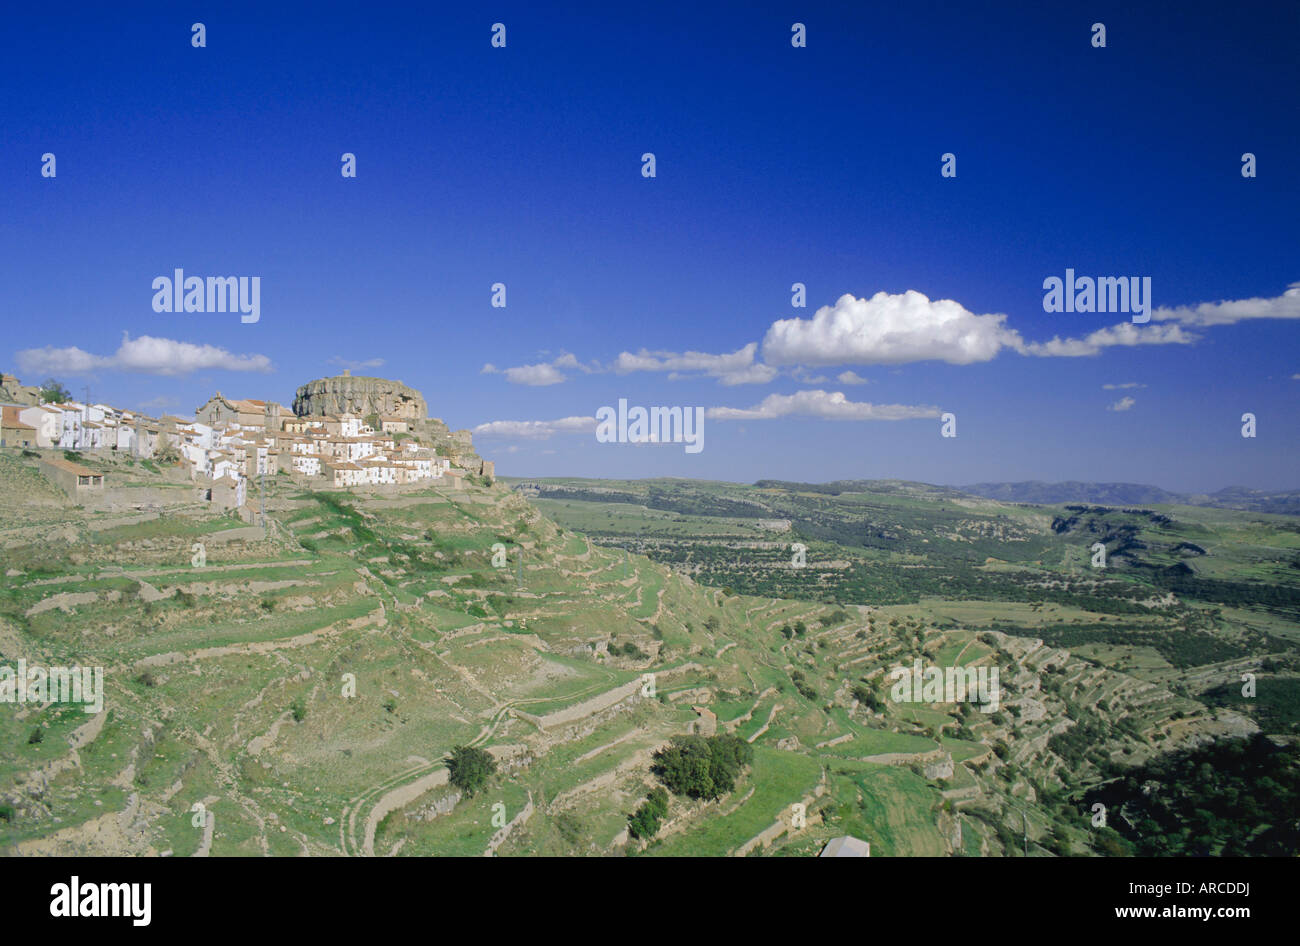 View to the village of Ares del Maestre, Castellon, Valencia, Spain, Europe - Stock Image